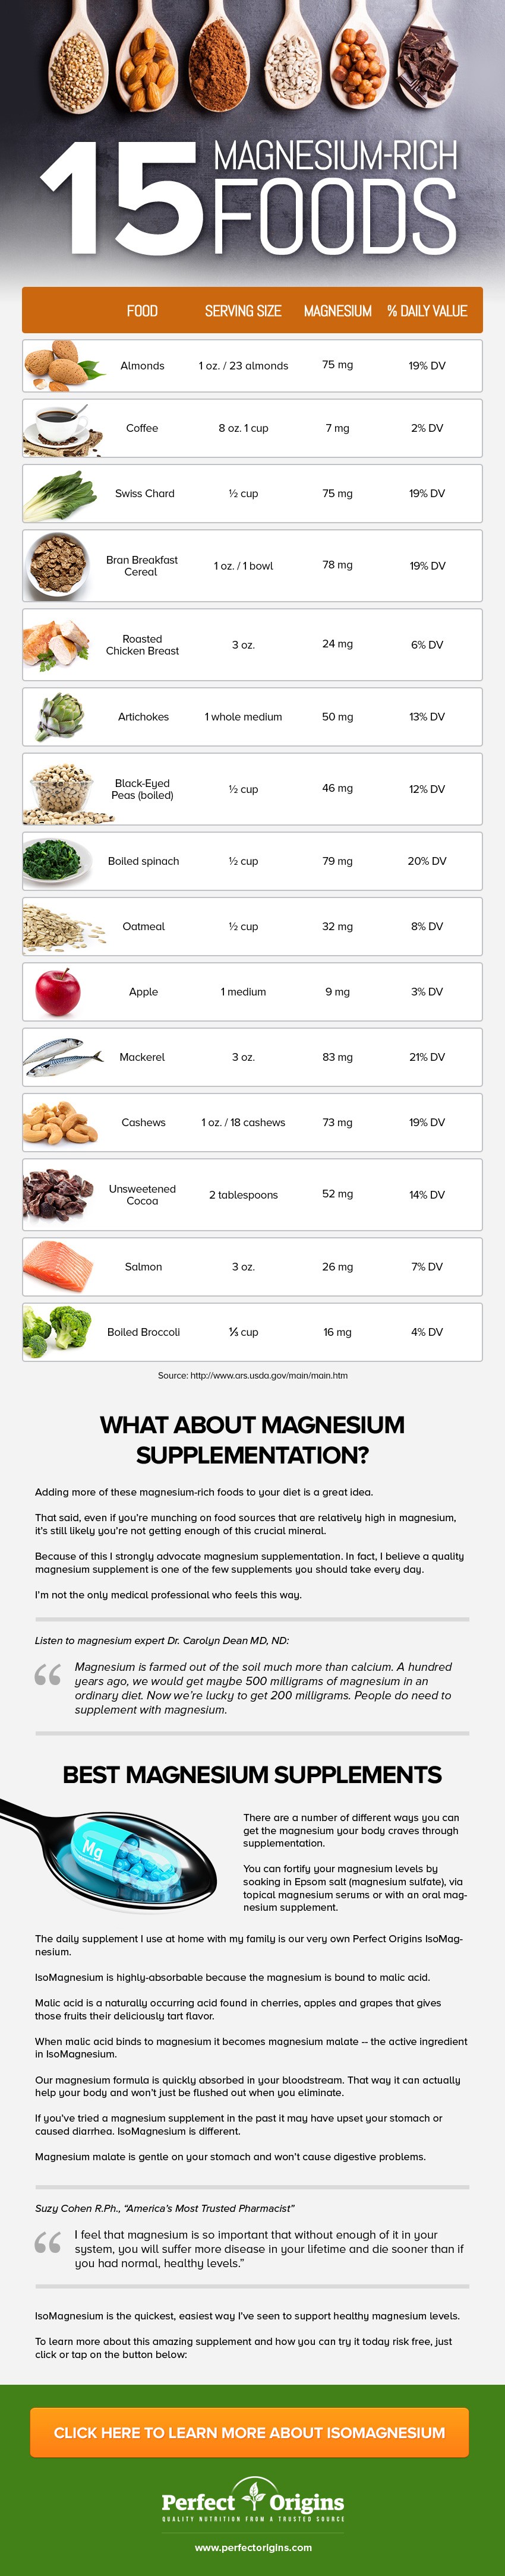 15 Magnesium-Rich Foods [Infographic]